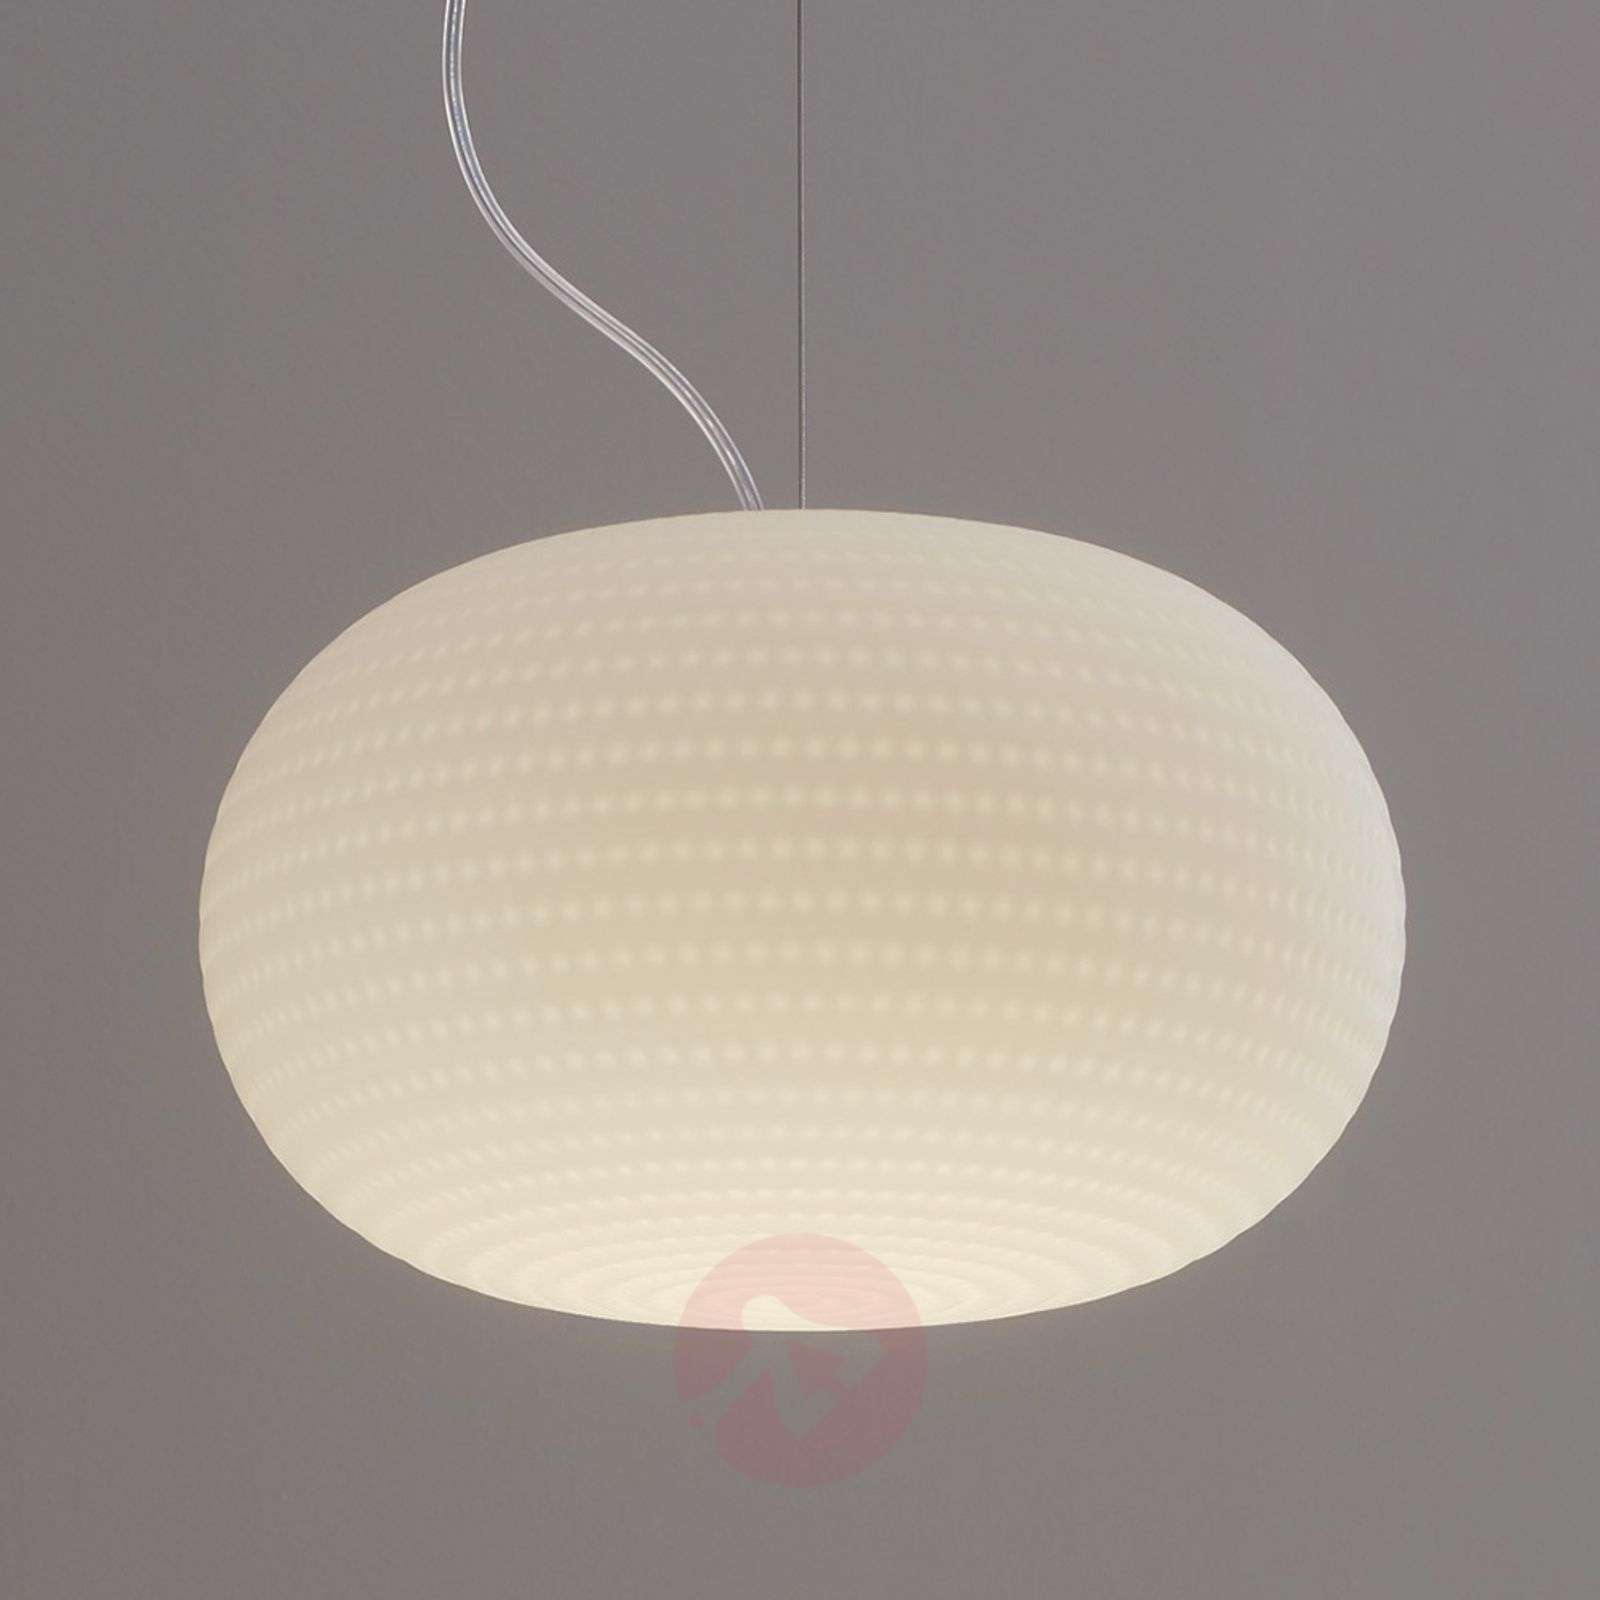 Bianca LED design hanglamp-3520365-01